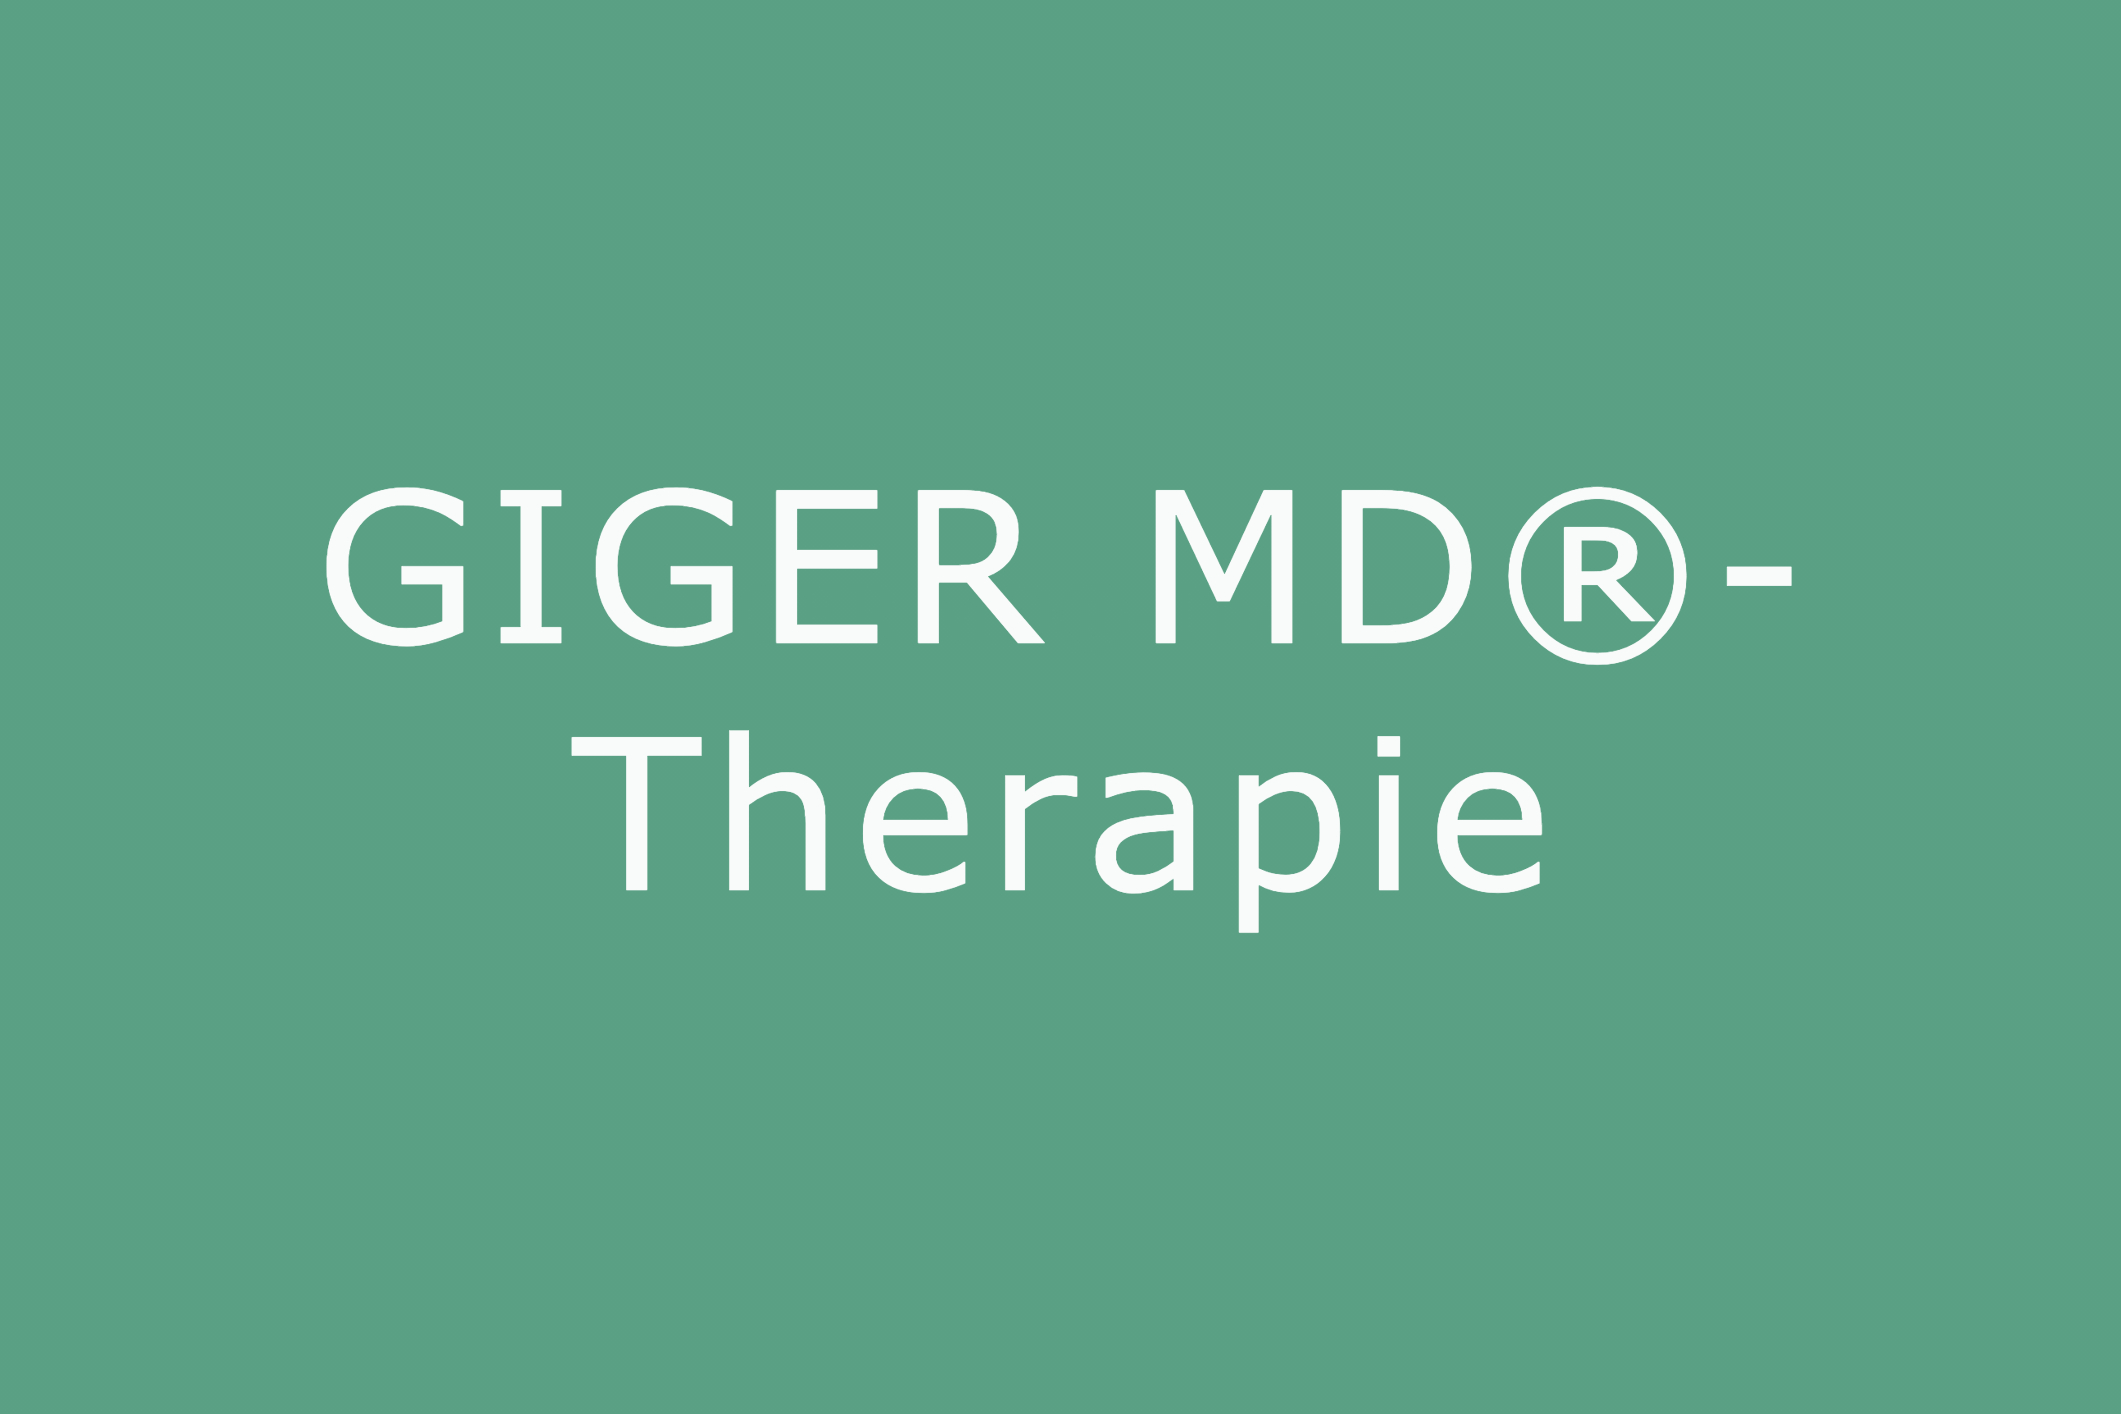 GIGER MD®-Therapie